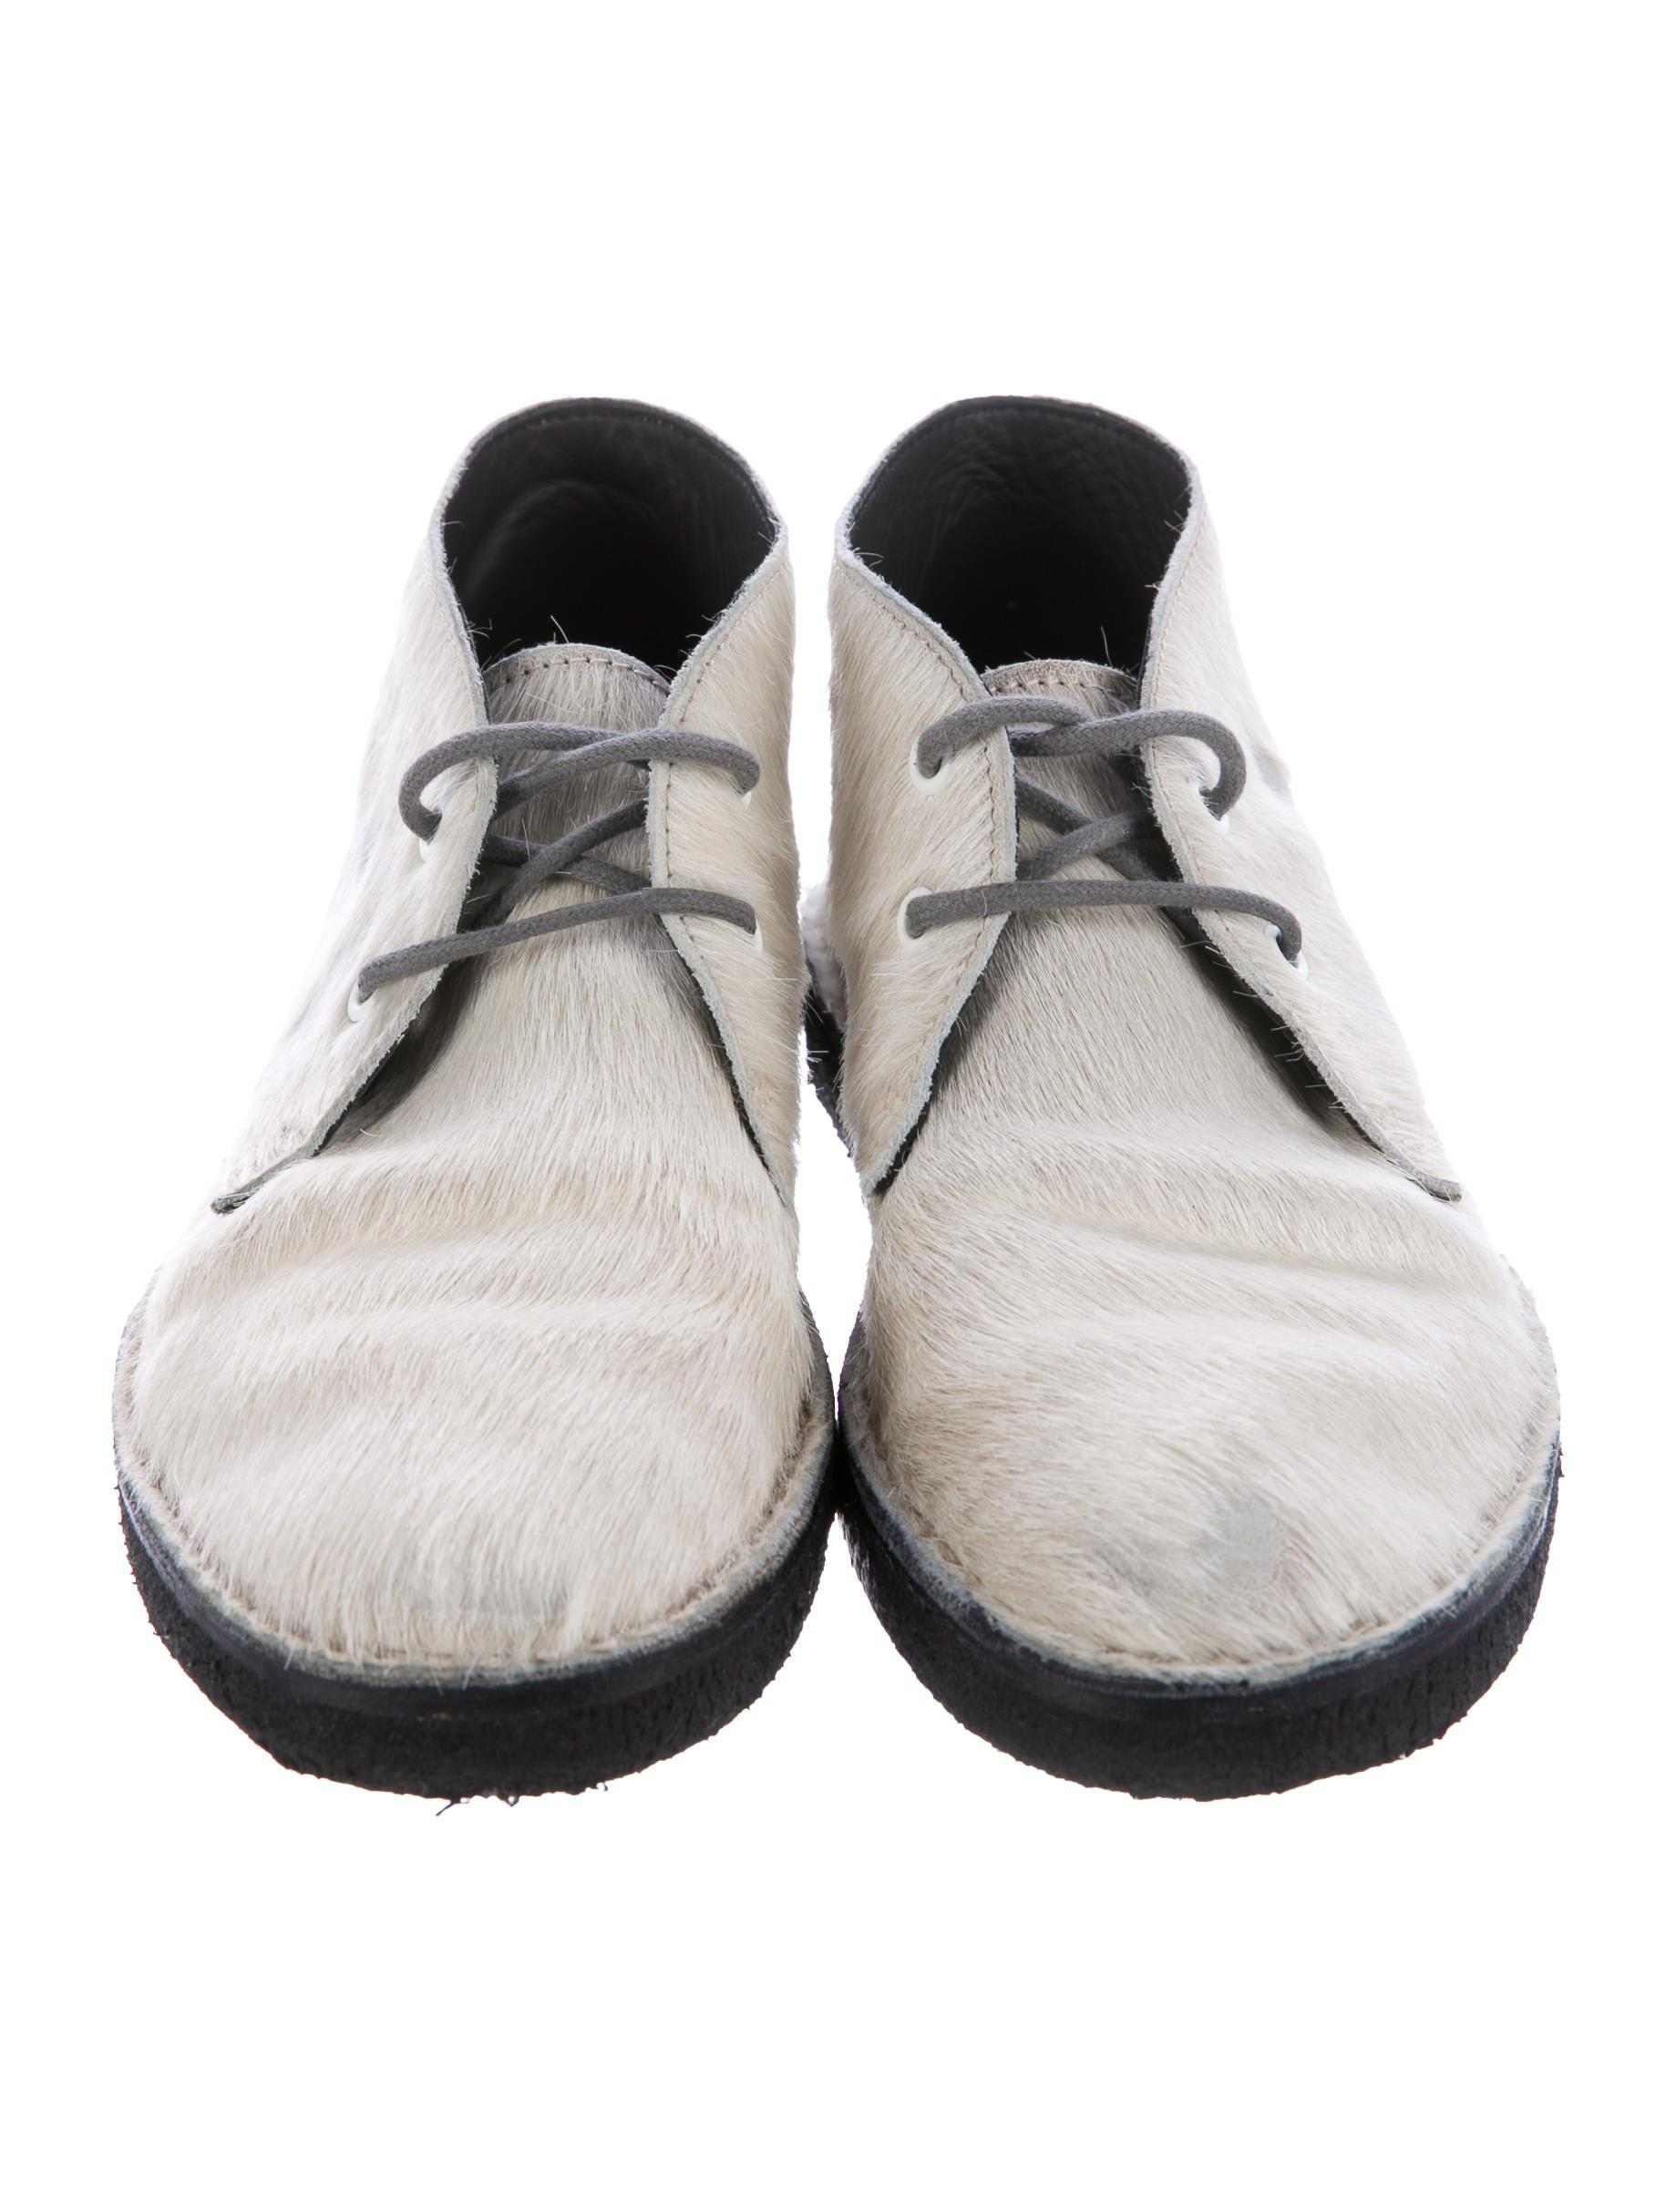 Golden Goose Ponyhair High-Top Oxfords footlocker cheap sale best place high quality online outlet discounts qEcqcA